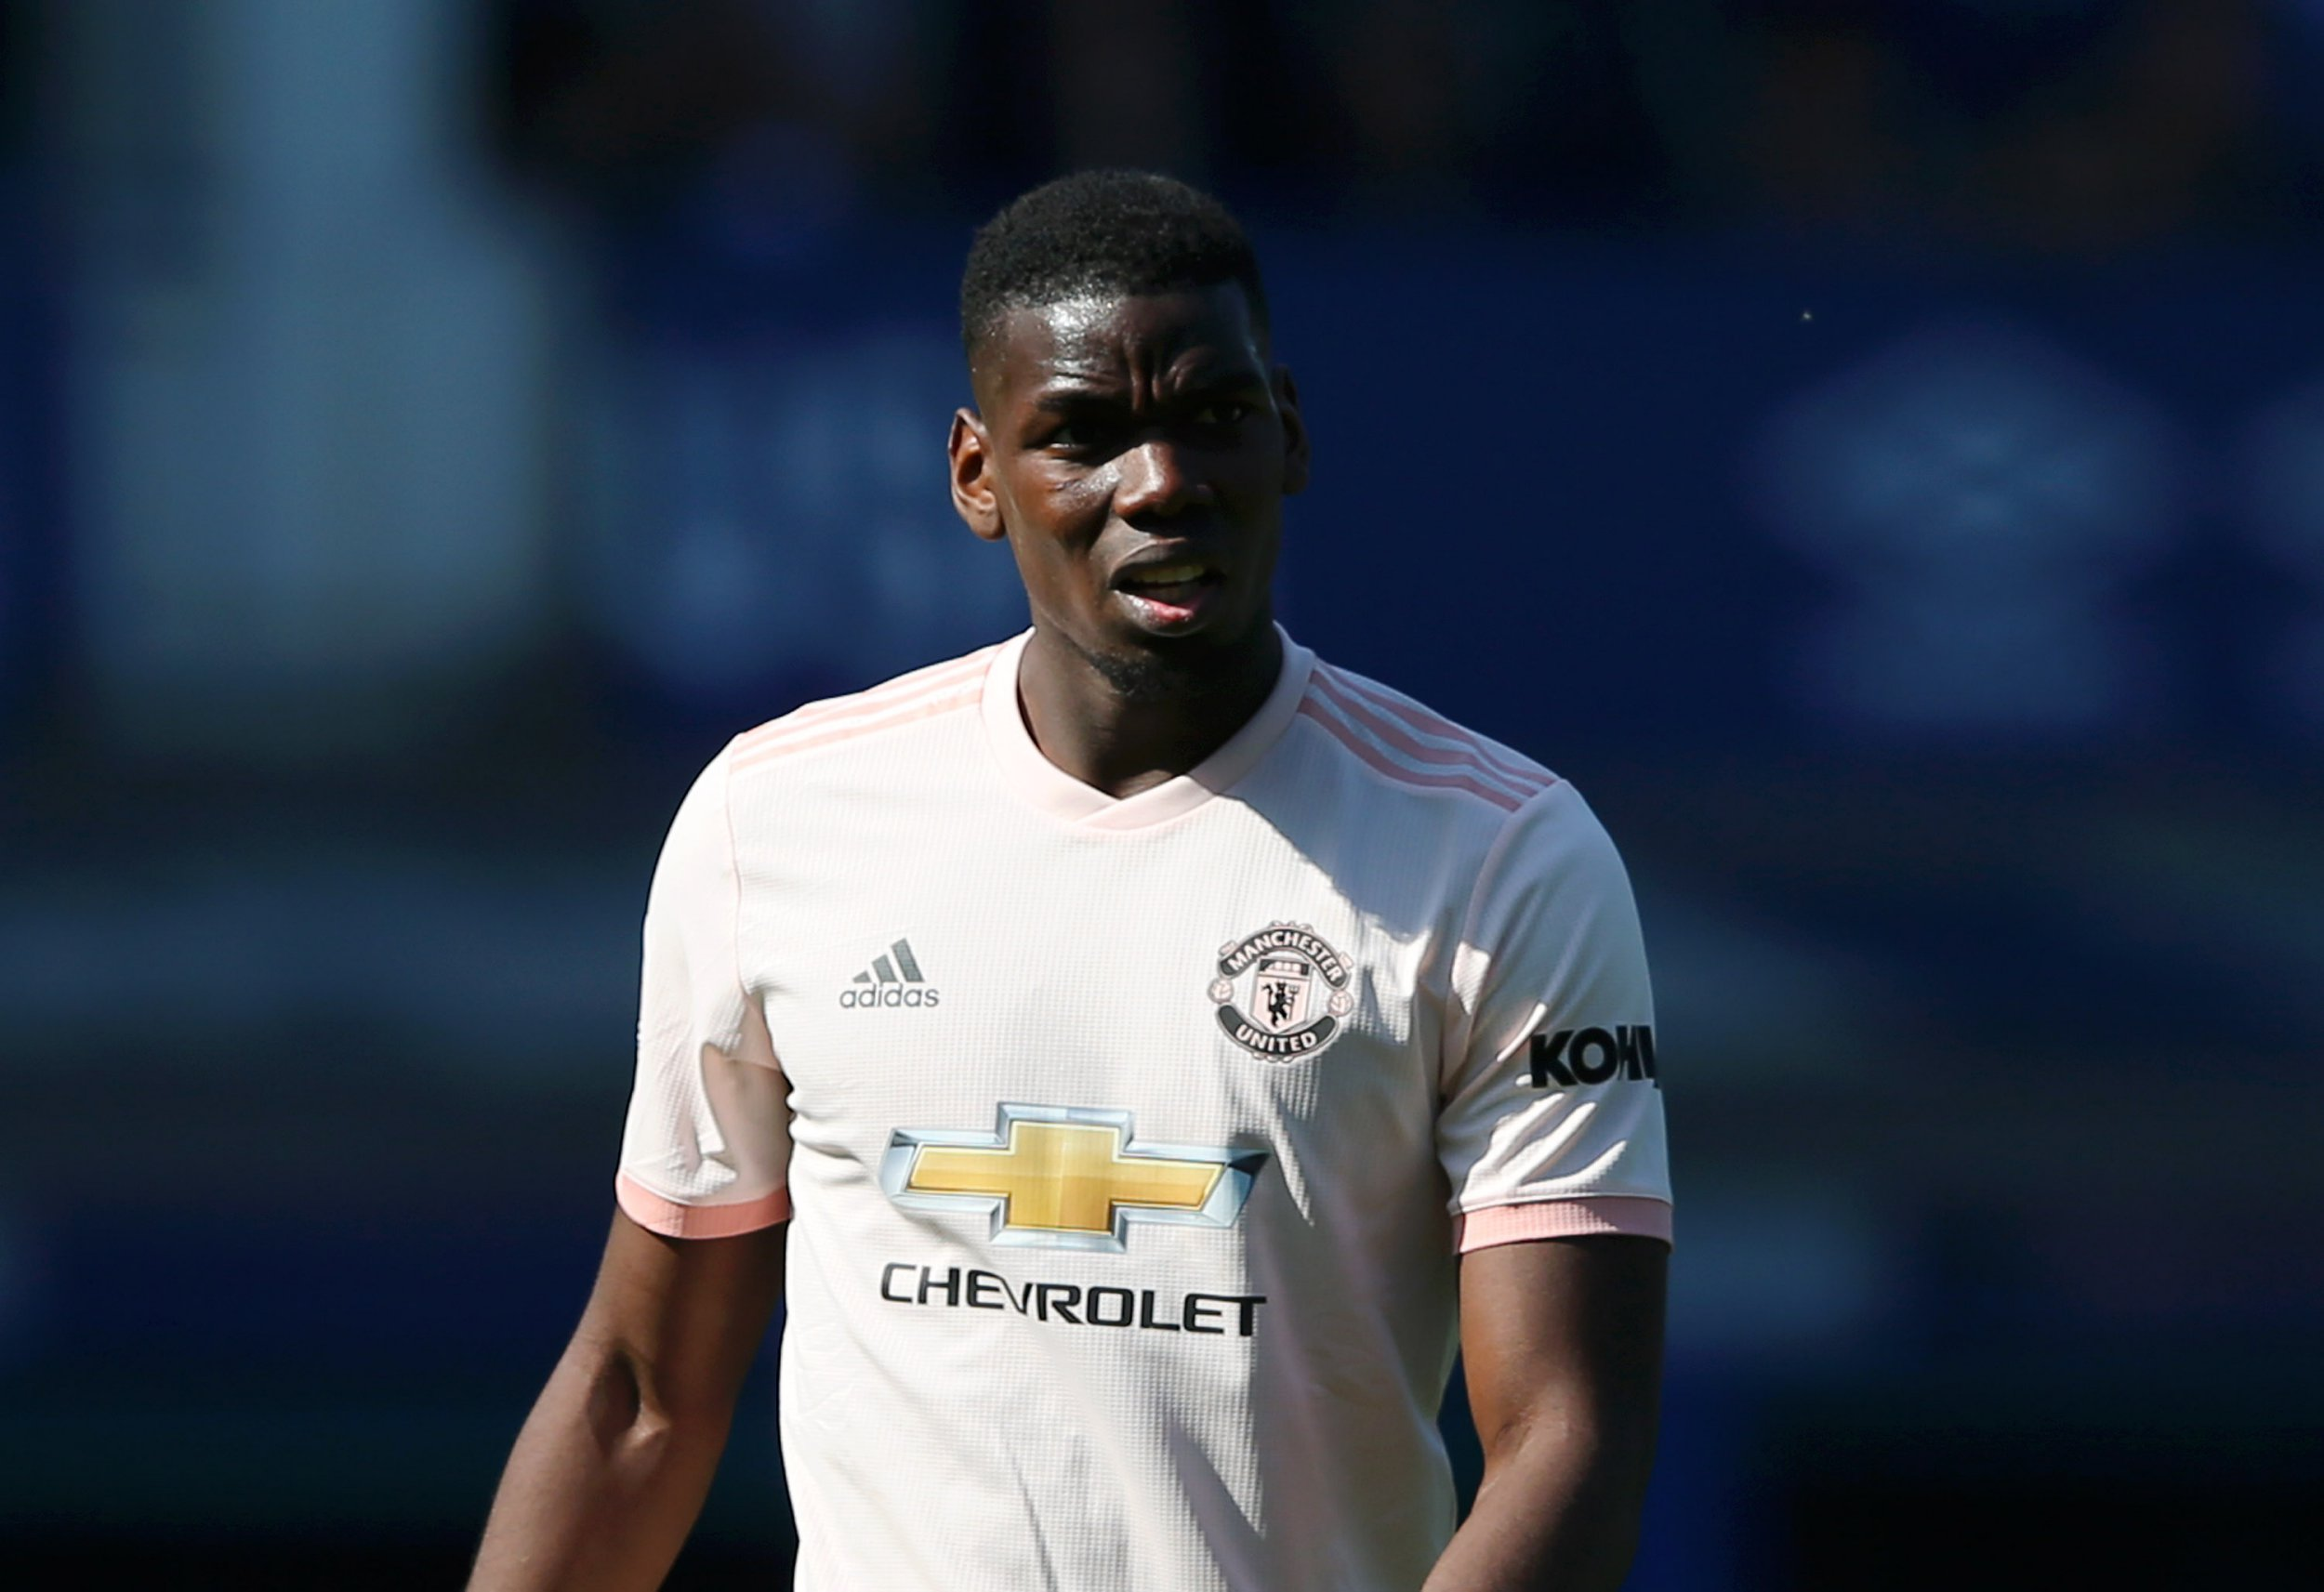 Paul Pogba snubs Manchester United fans and leaves Ole Gunnar Solskjaer to apologise after Everton defeat